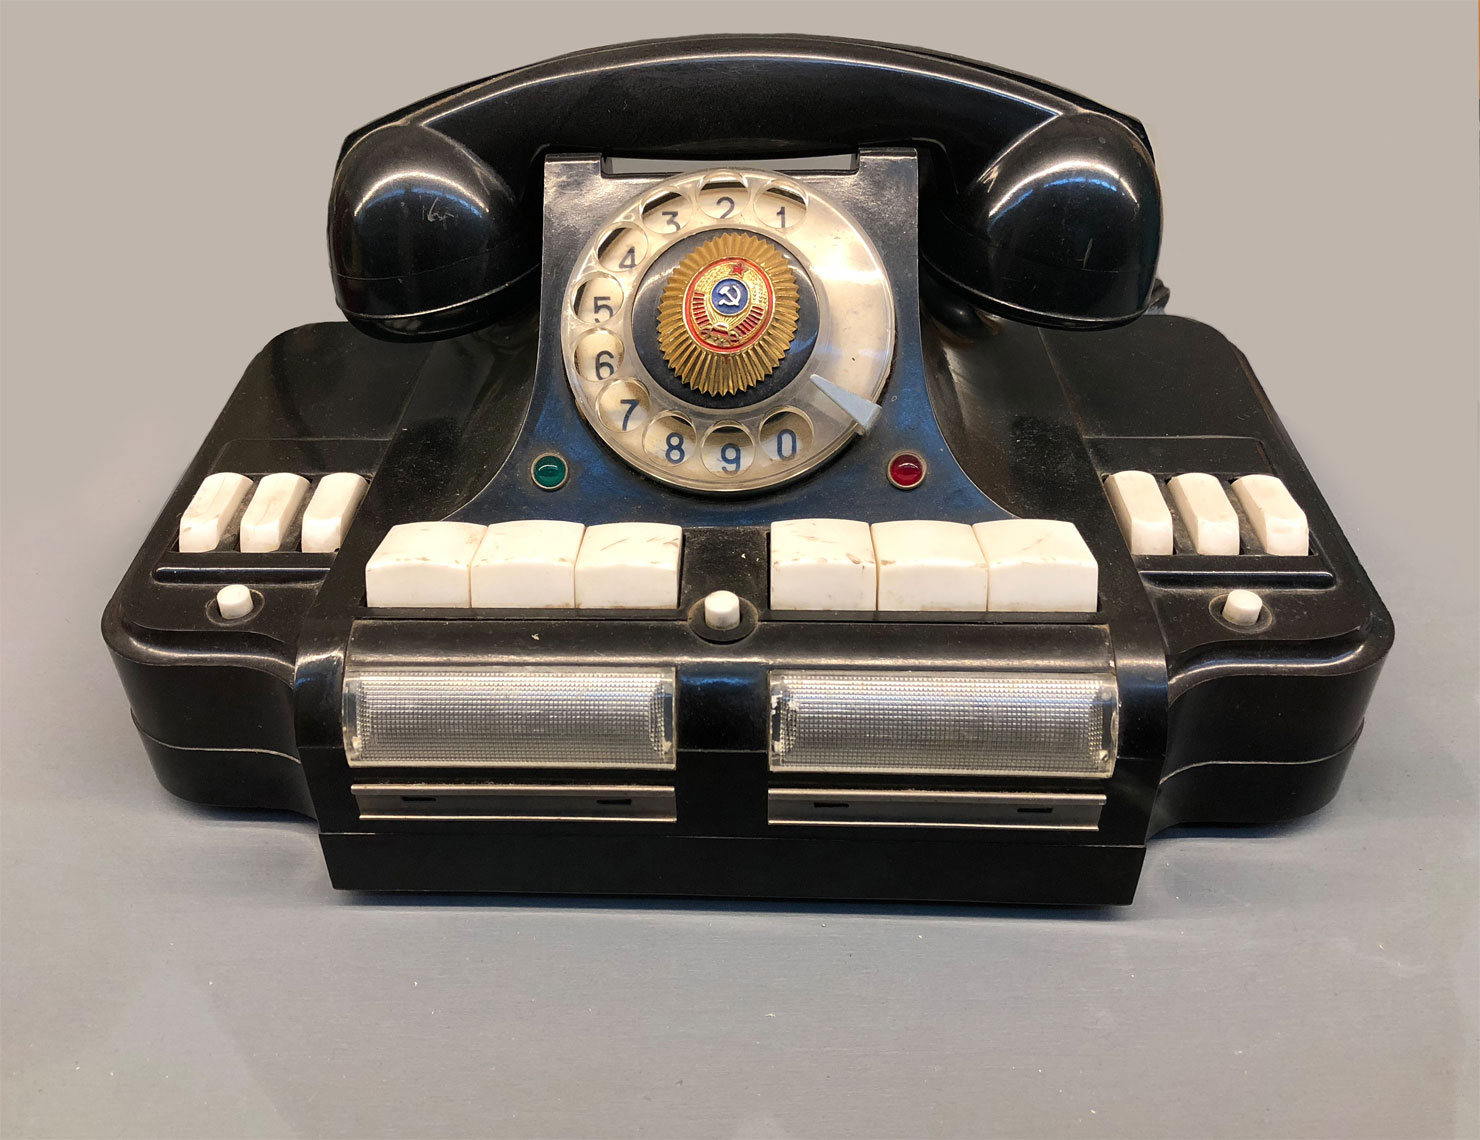 web-new-East-German-Spy-Phone-2017